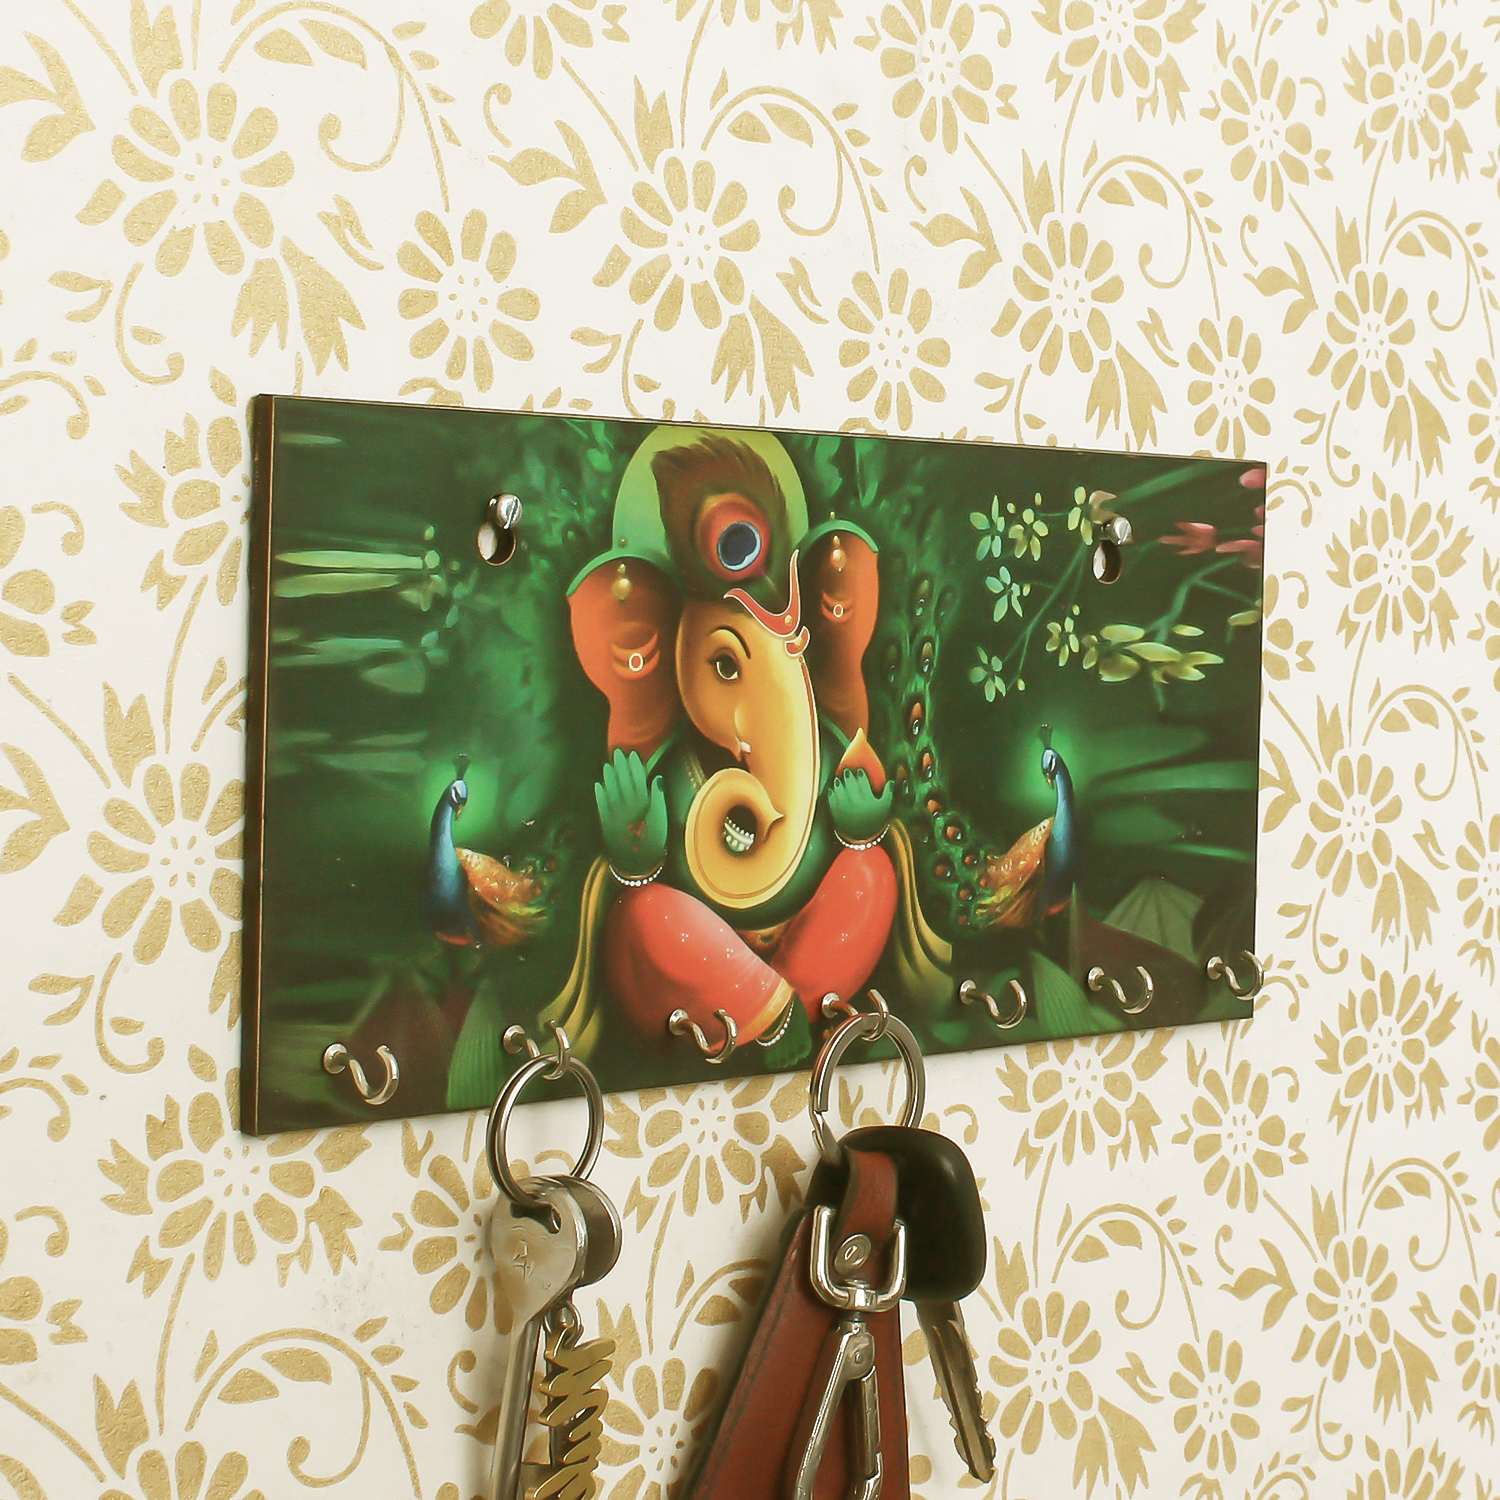 Lord Ganesha Theme Wooden Key Holder with 7 Hooks Indian Home Decor